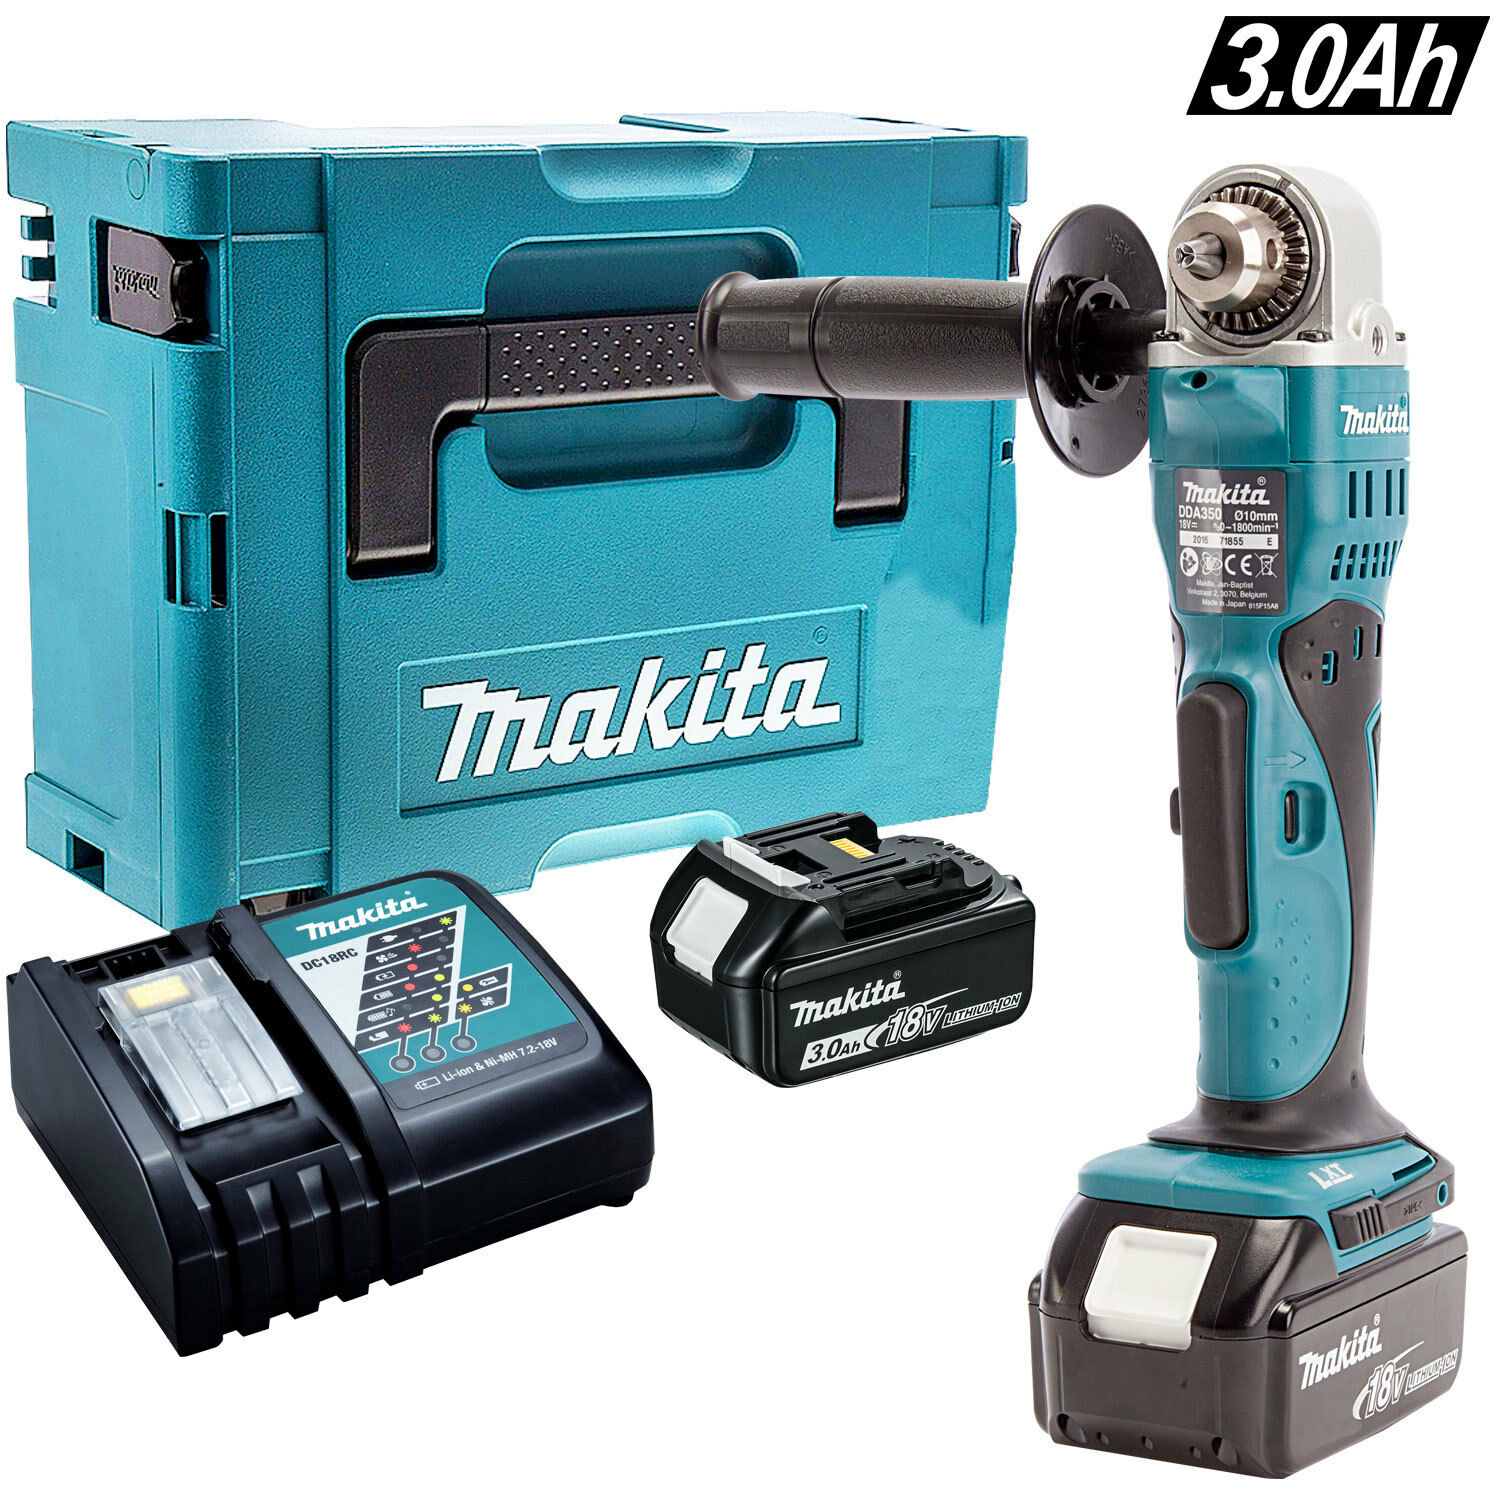 Makita DDA350Z 18V Cordless Angle Drill With 2 x 3.0Ah Batteries Charger & Case